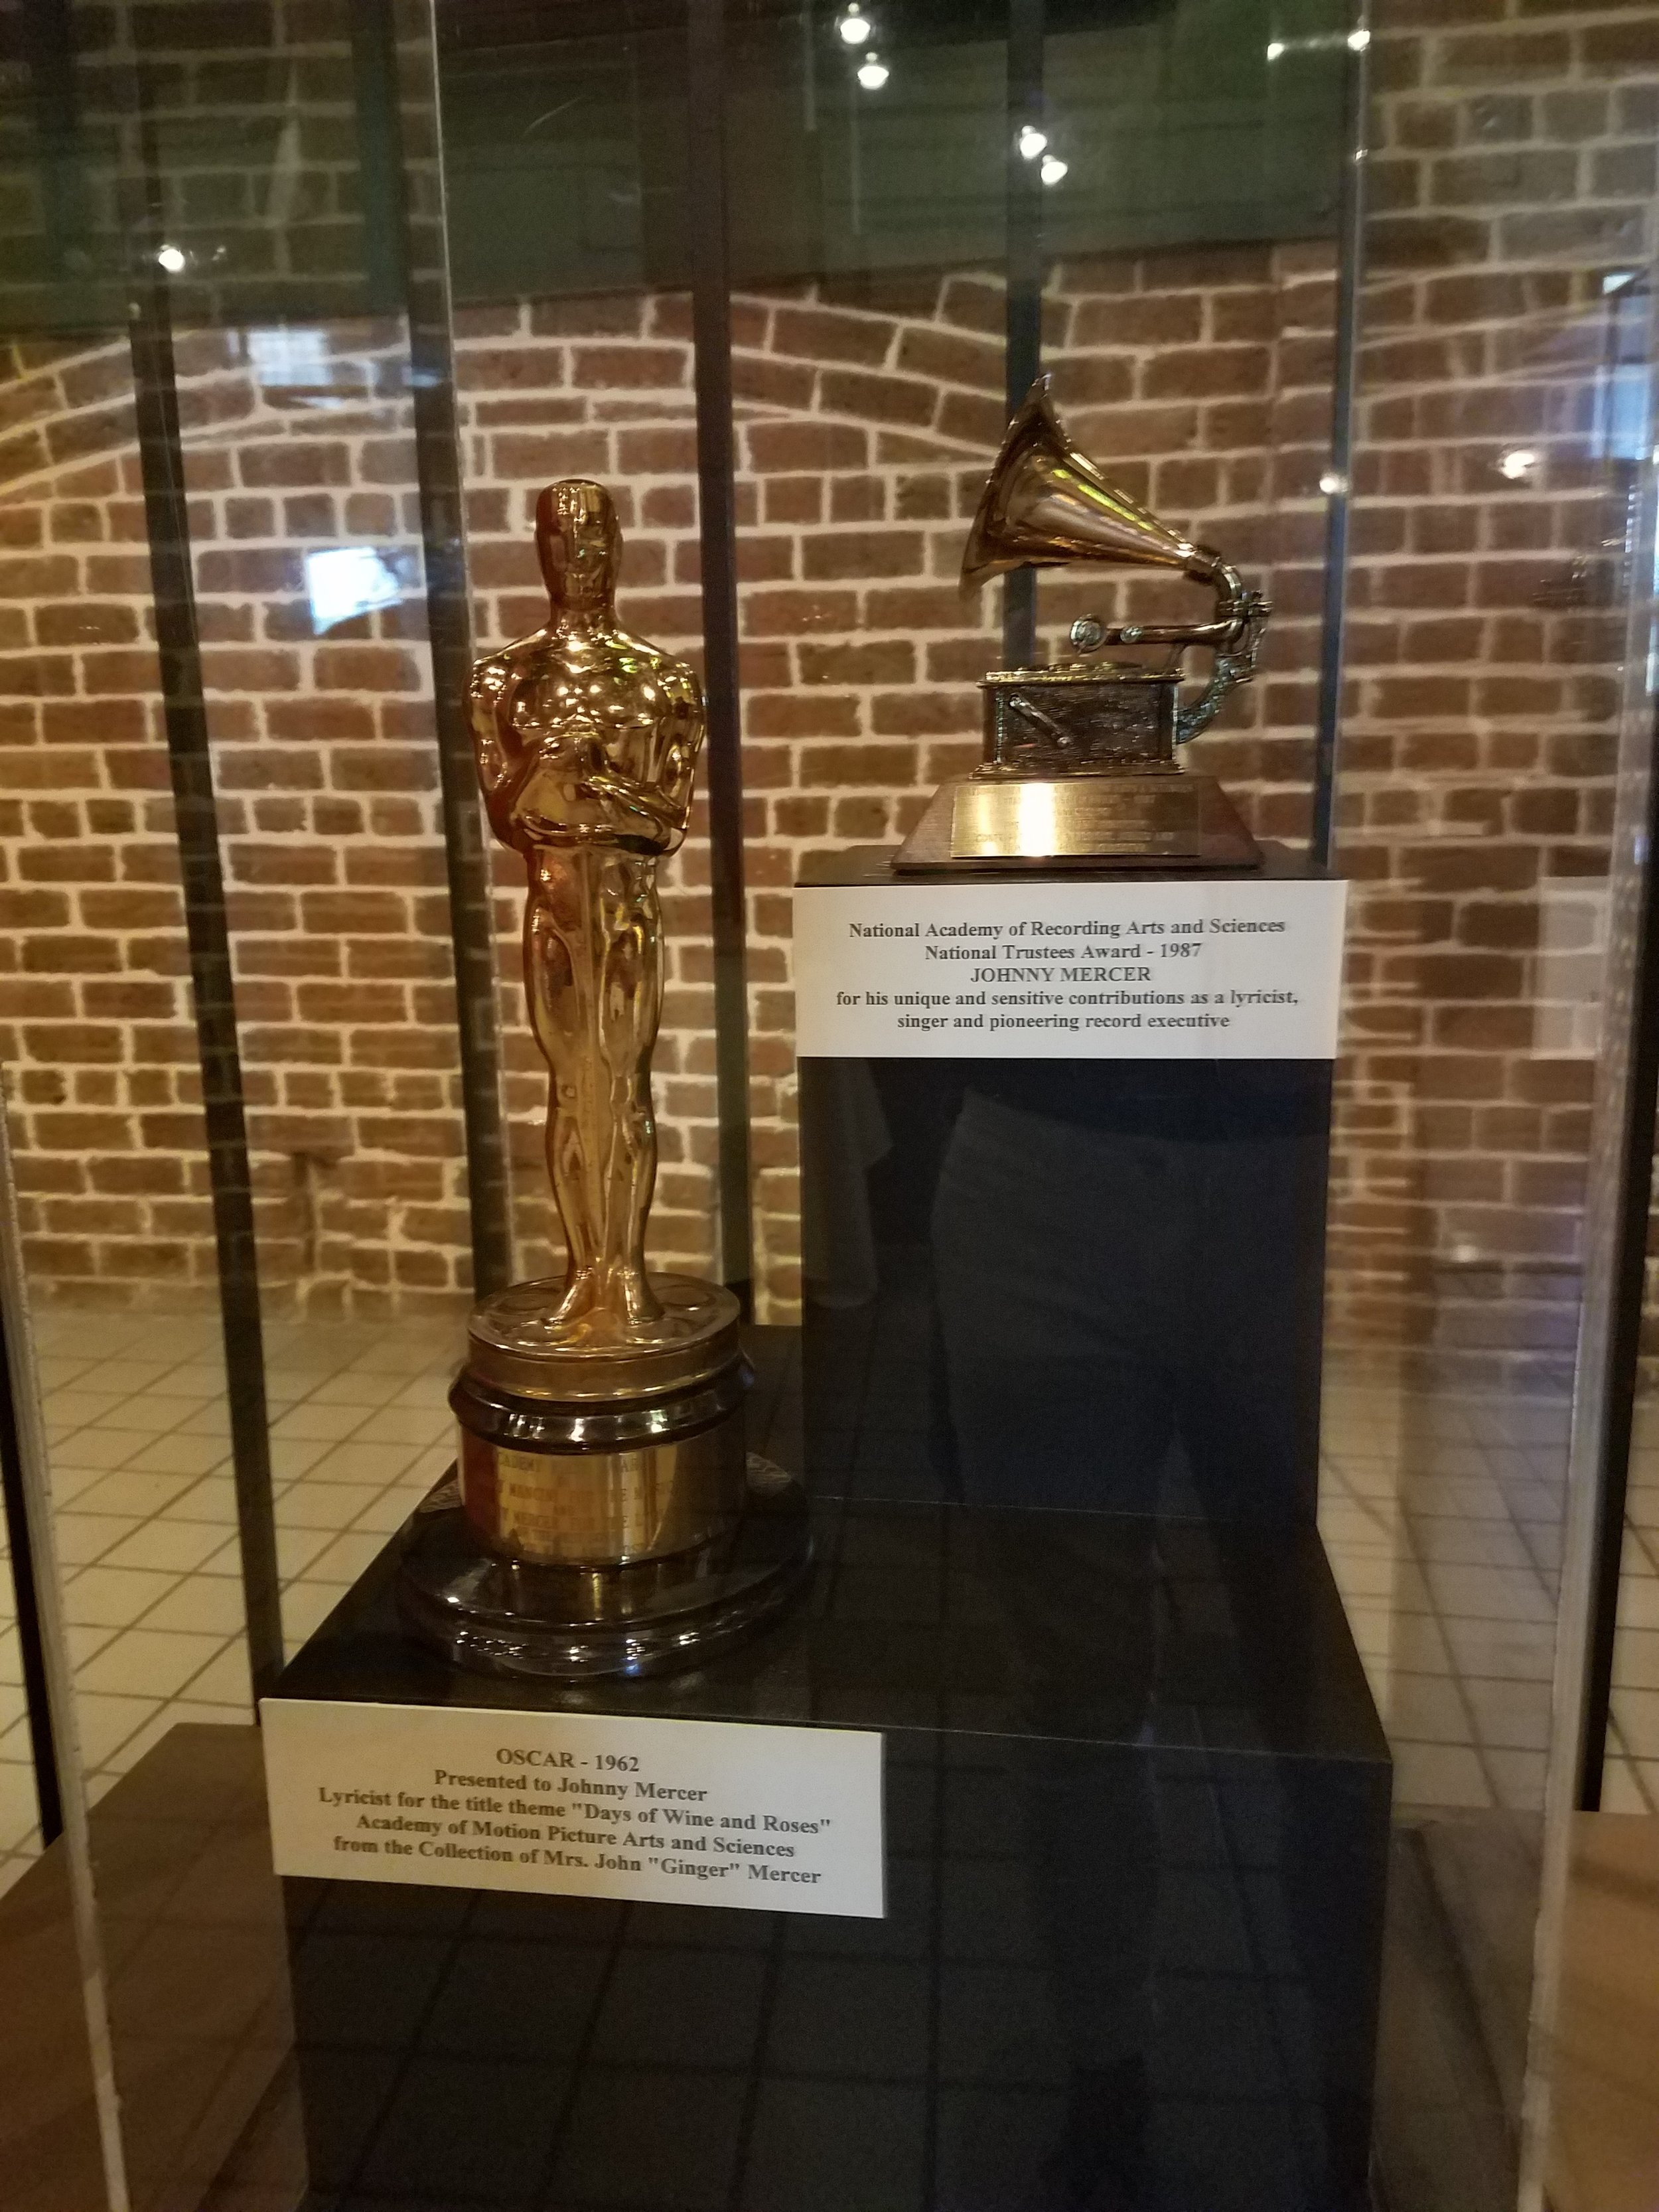 Johnny Mercers' Oscar awards…yes he wrote the Lyrics for Moon River which is a real river we passed on the ICW the next day heading north toward Beaufort, SC